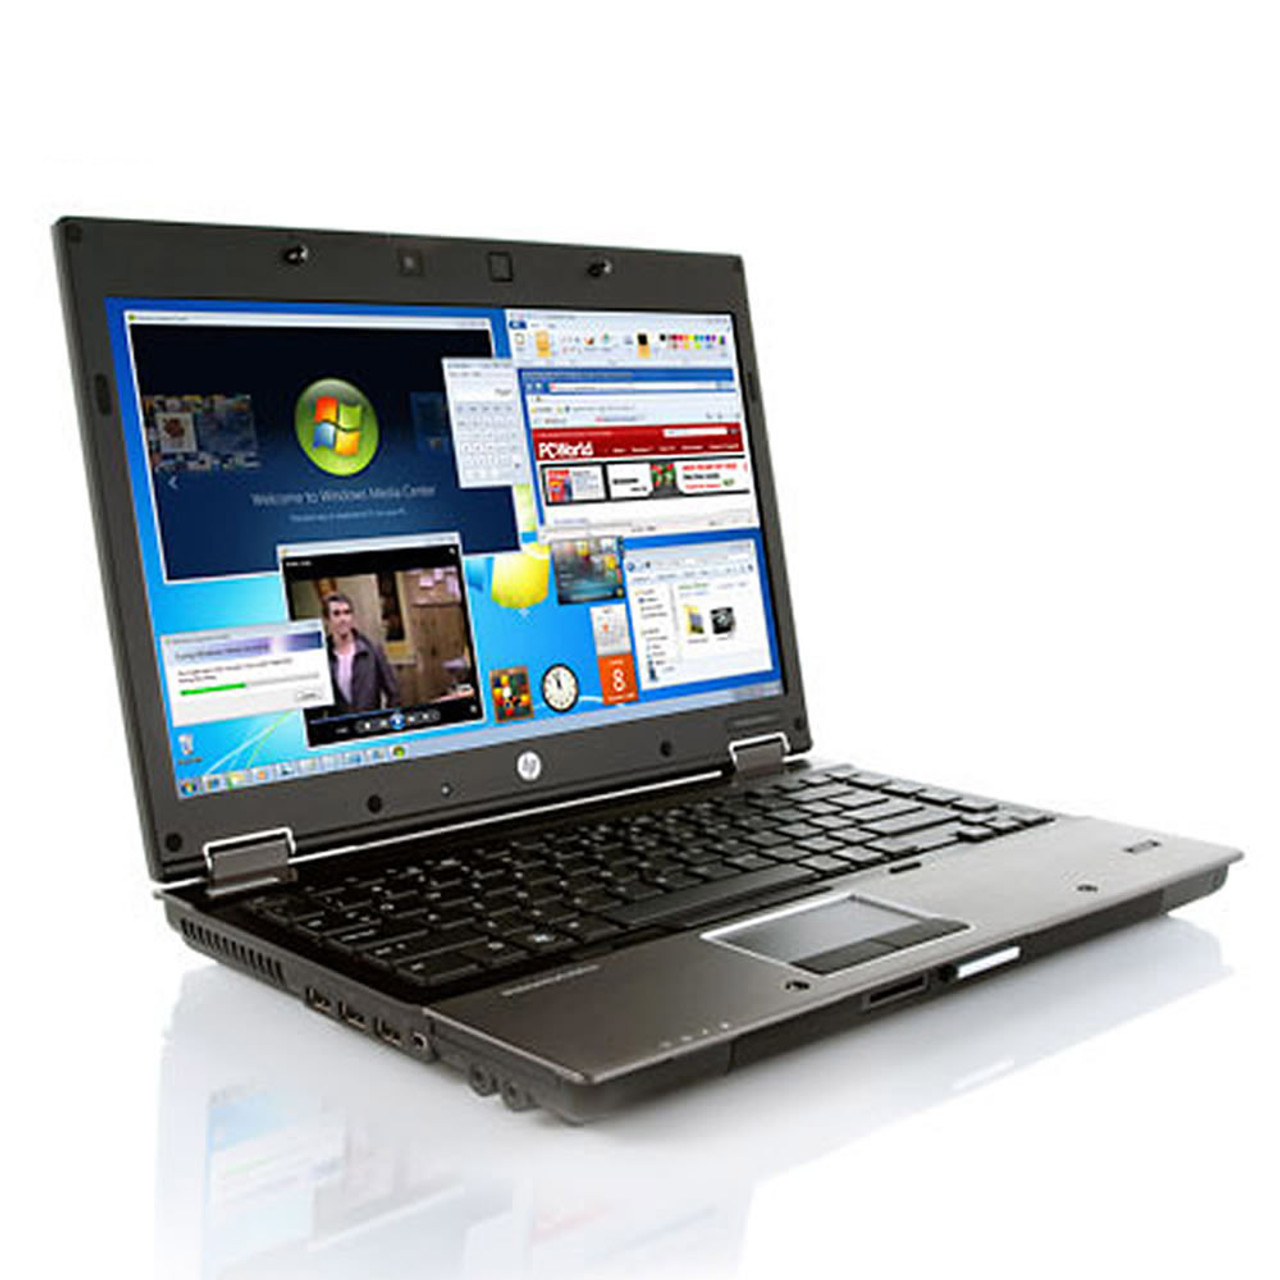 HP ELITEBOOK 8440P PROJECTOR DRIVERS FOR WINDOWS 7